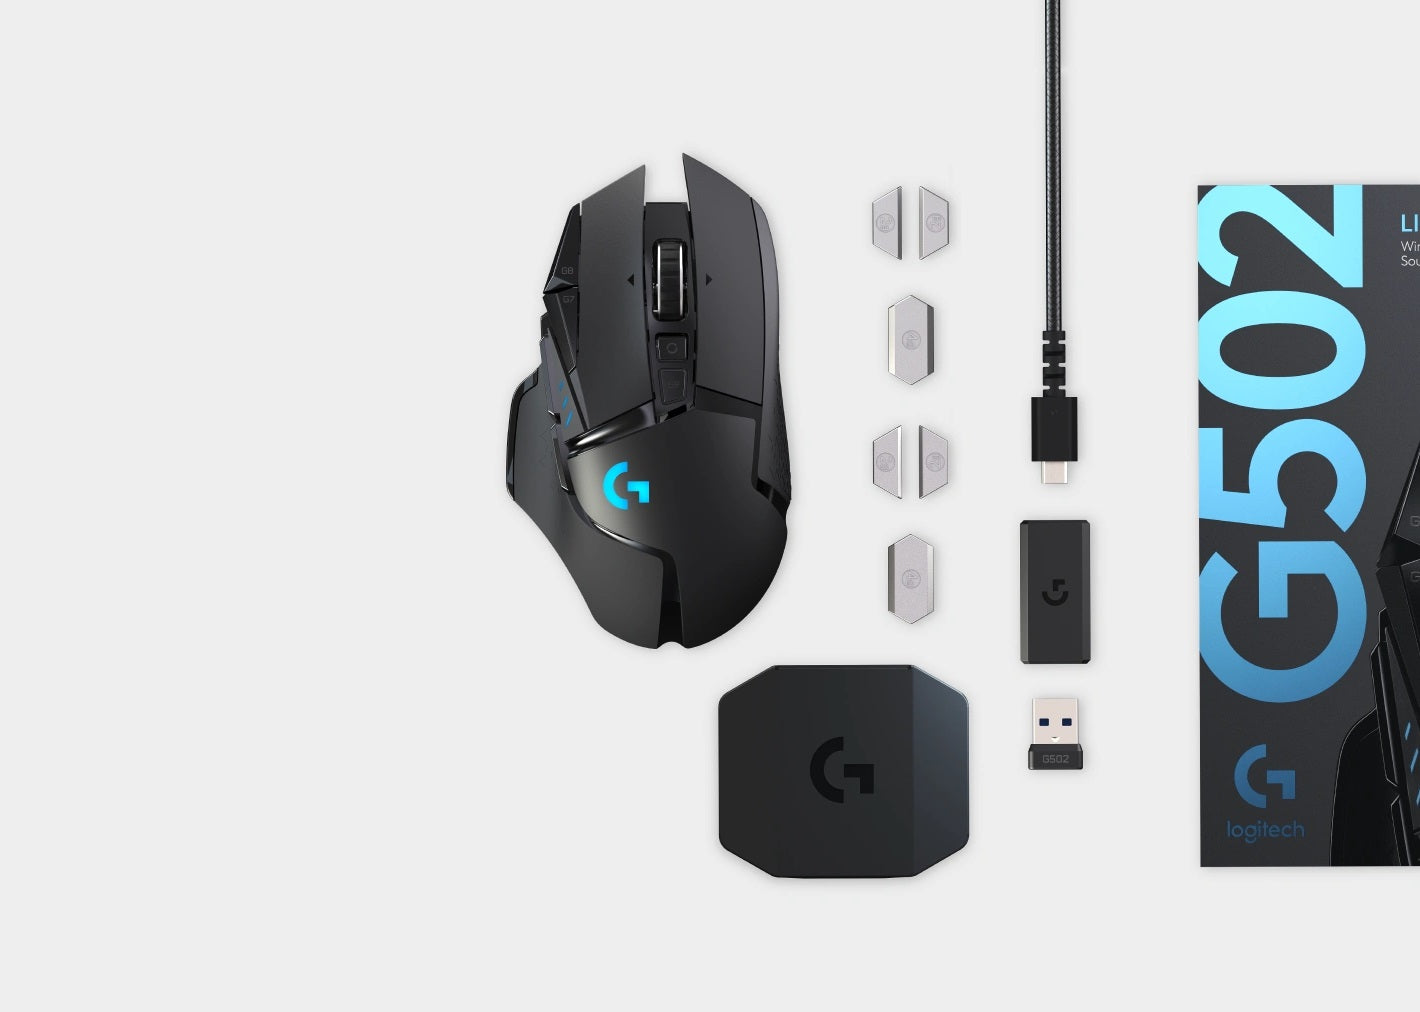 IN THE BOX you get the Gaming Mouse, LIGHTSPEED™ wireless receiver, Receiver extension adapter, Charging/data cable, Accessory box, 4x 2g Weights, 2x 4g Weights & User documentation